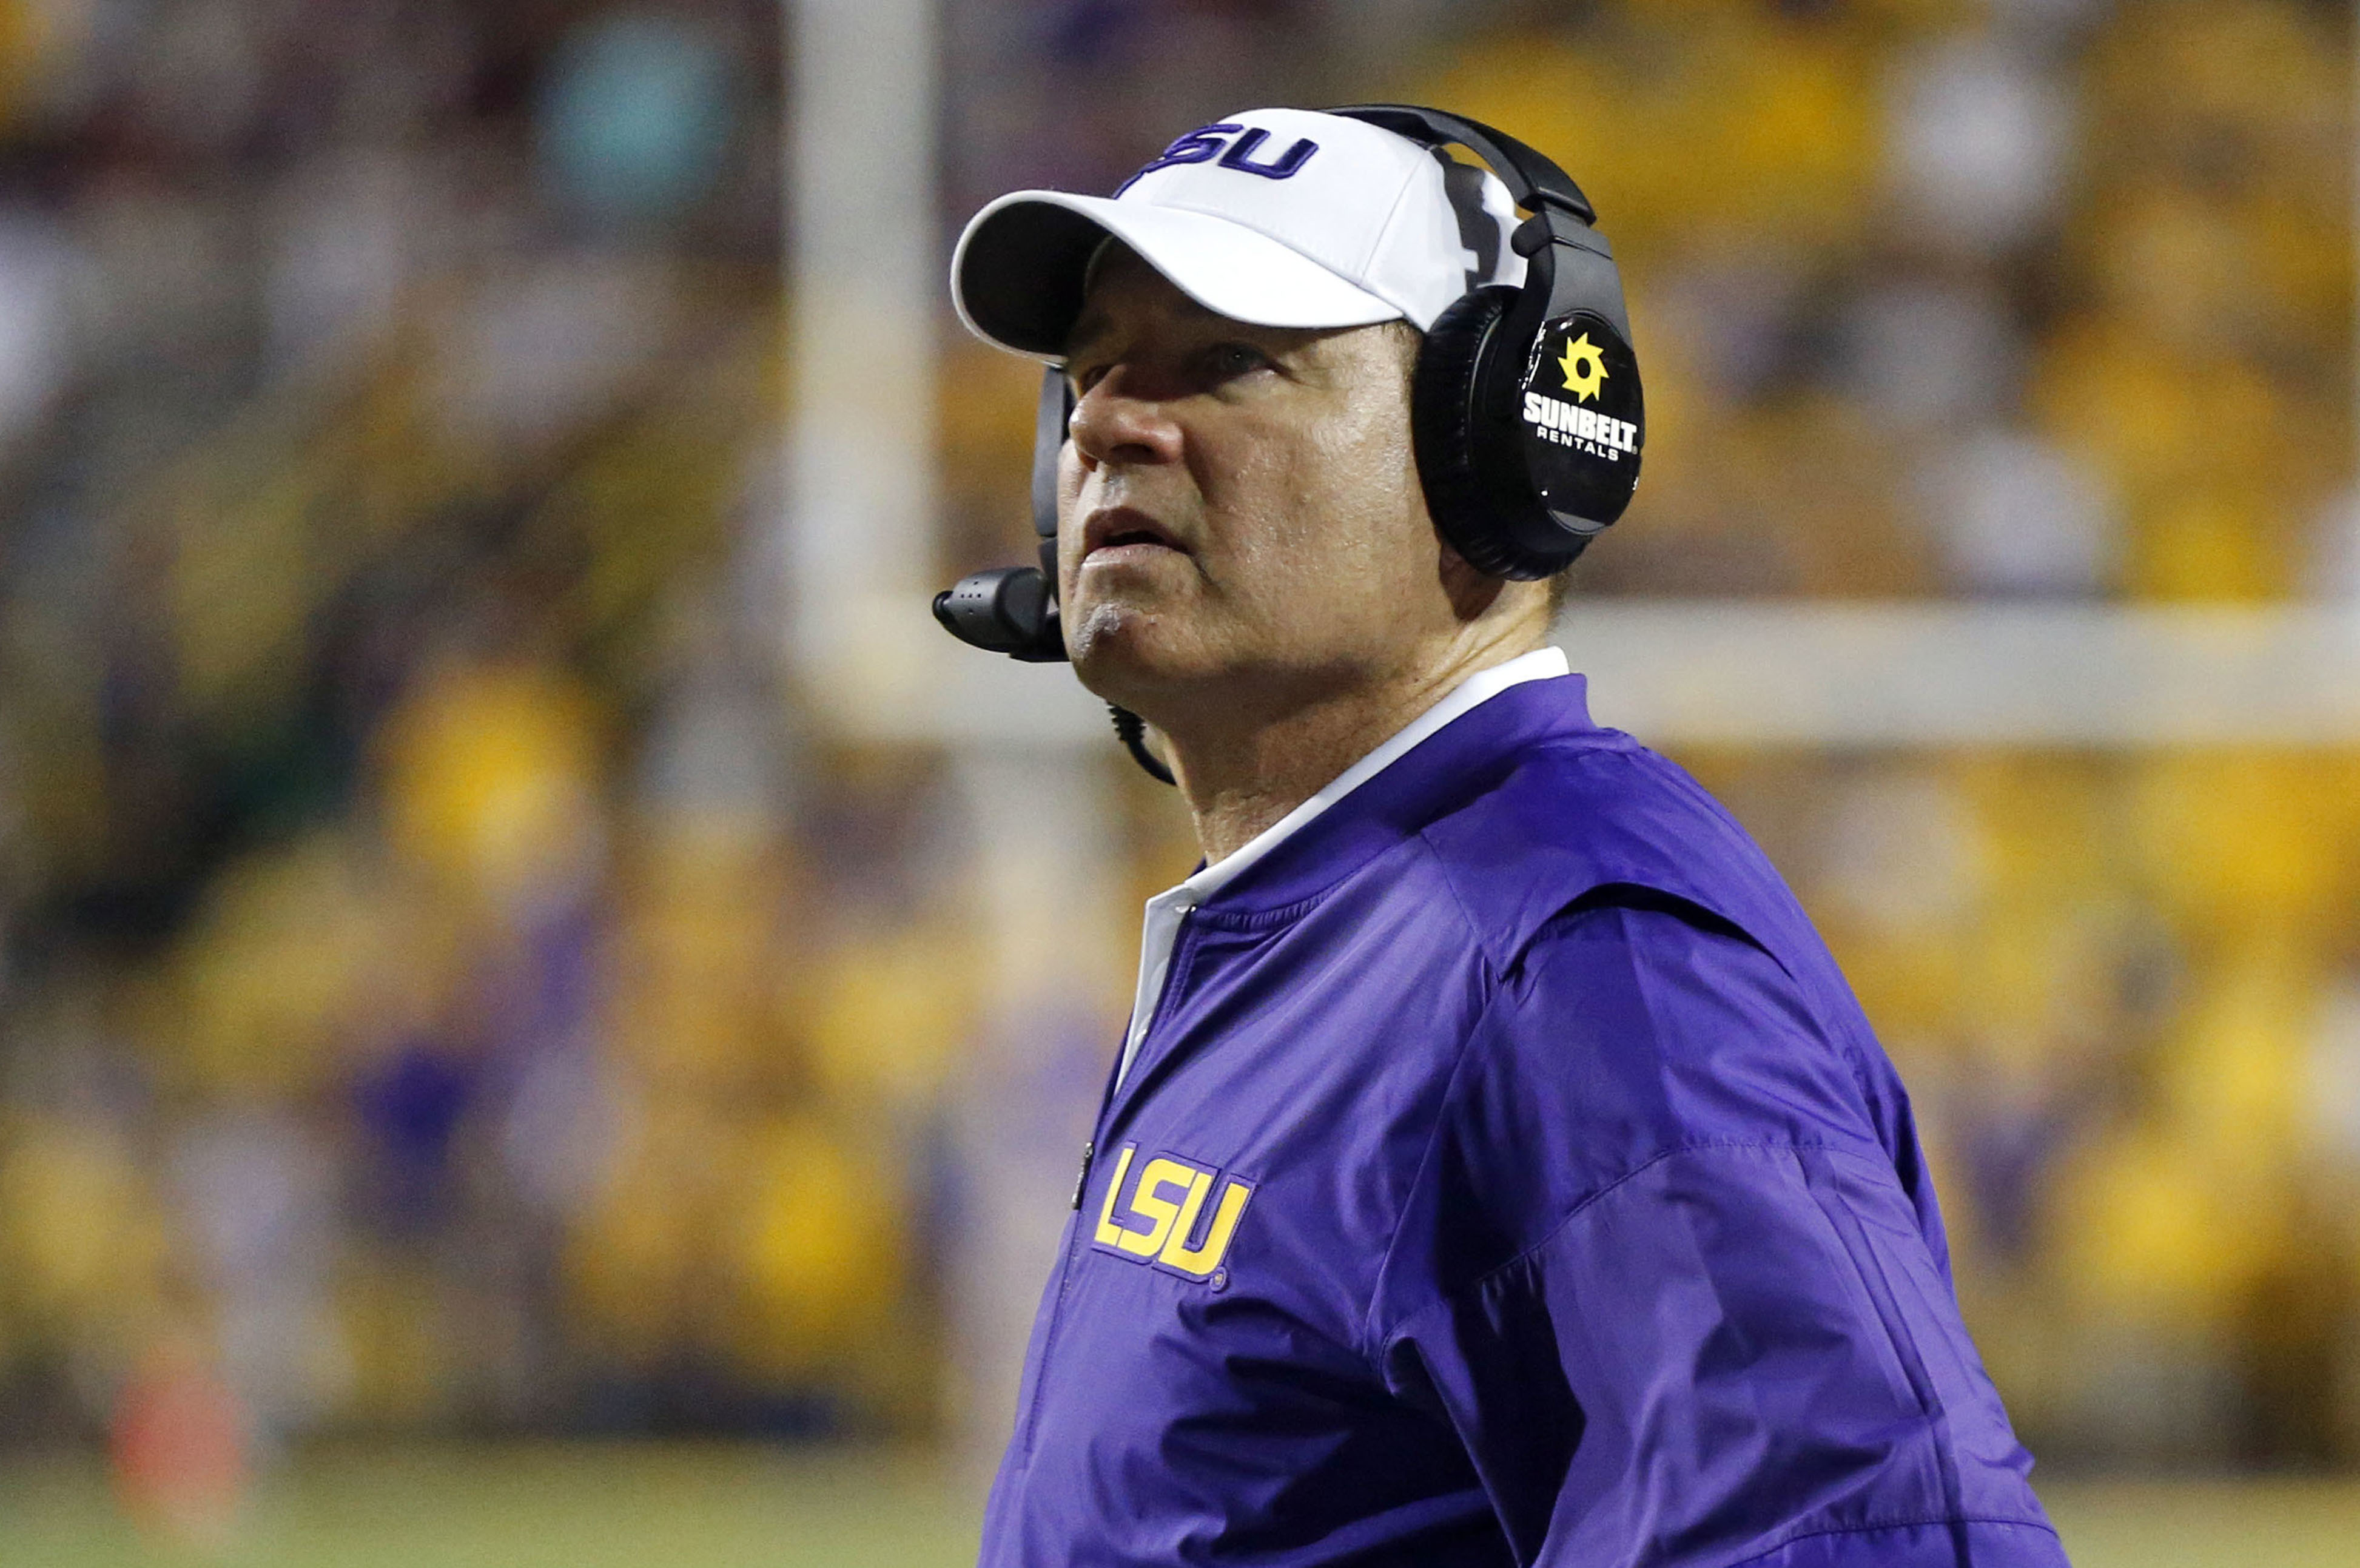 FILE - This Sept. 17, 2016 file photo shows LSU head coach Les Miles watching from the sideline in the second half of an NCAA college football game against Mississippi State in Baton Rouge, La. Two people familiar with the decision say LSU has fired Miles